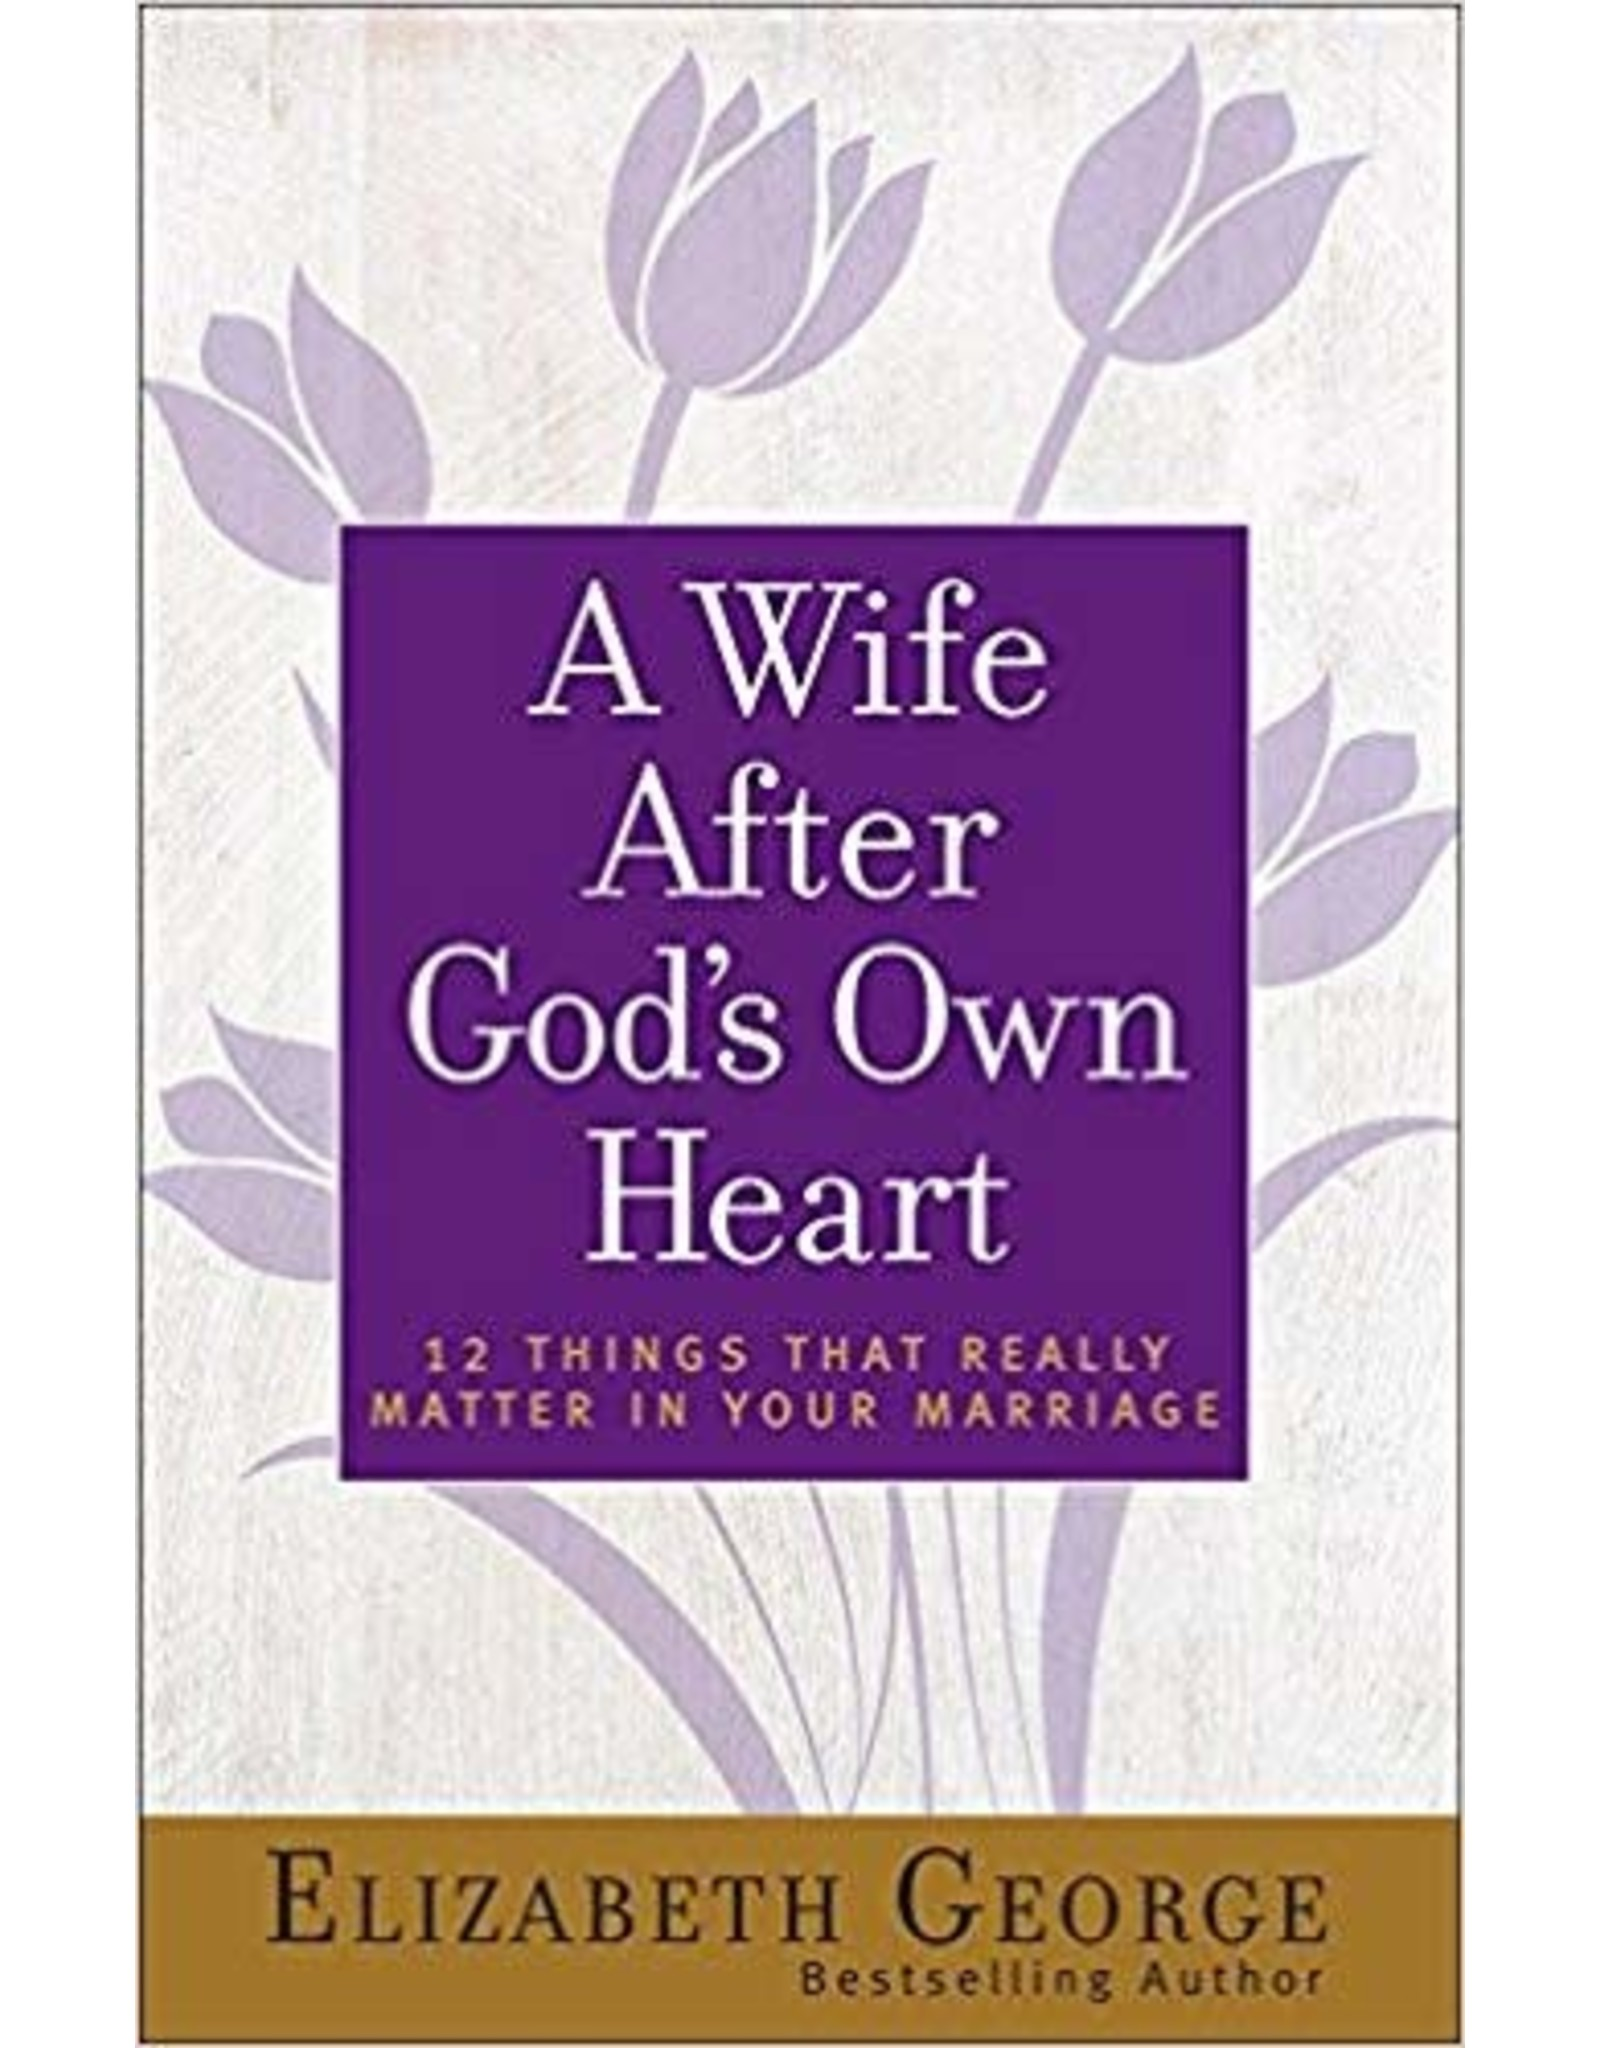 George A Wife After God's Own Heart